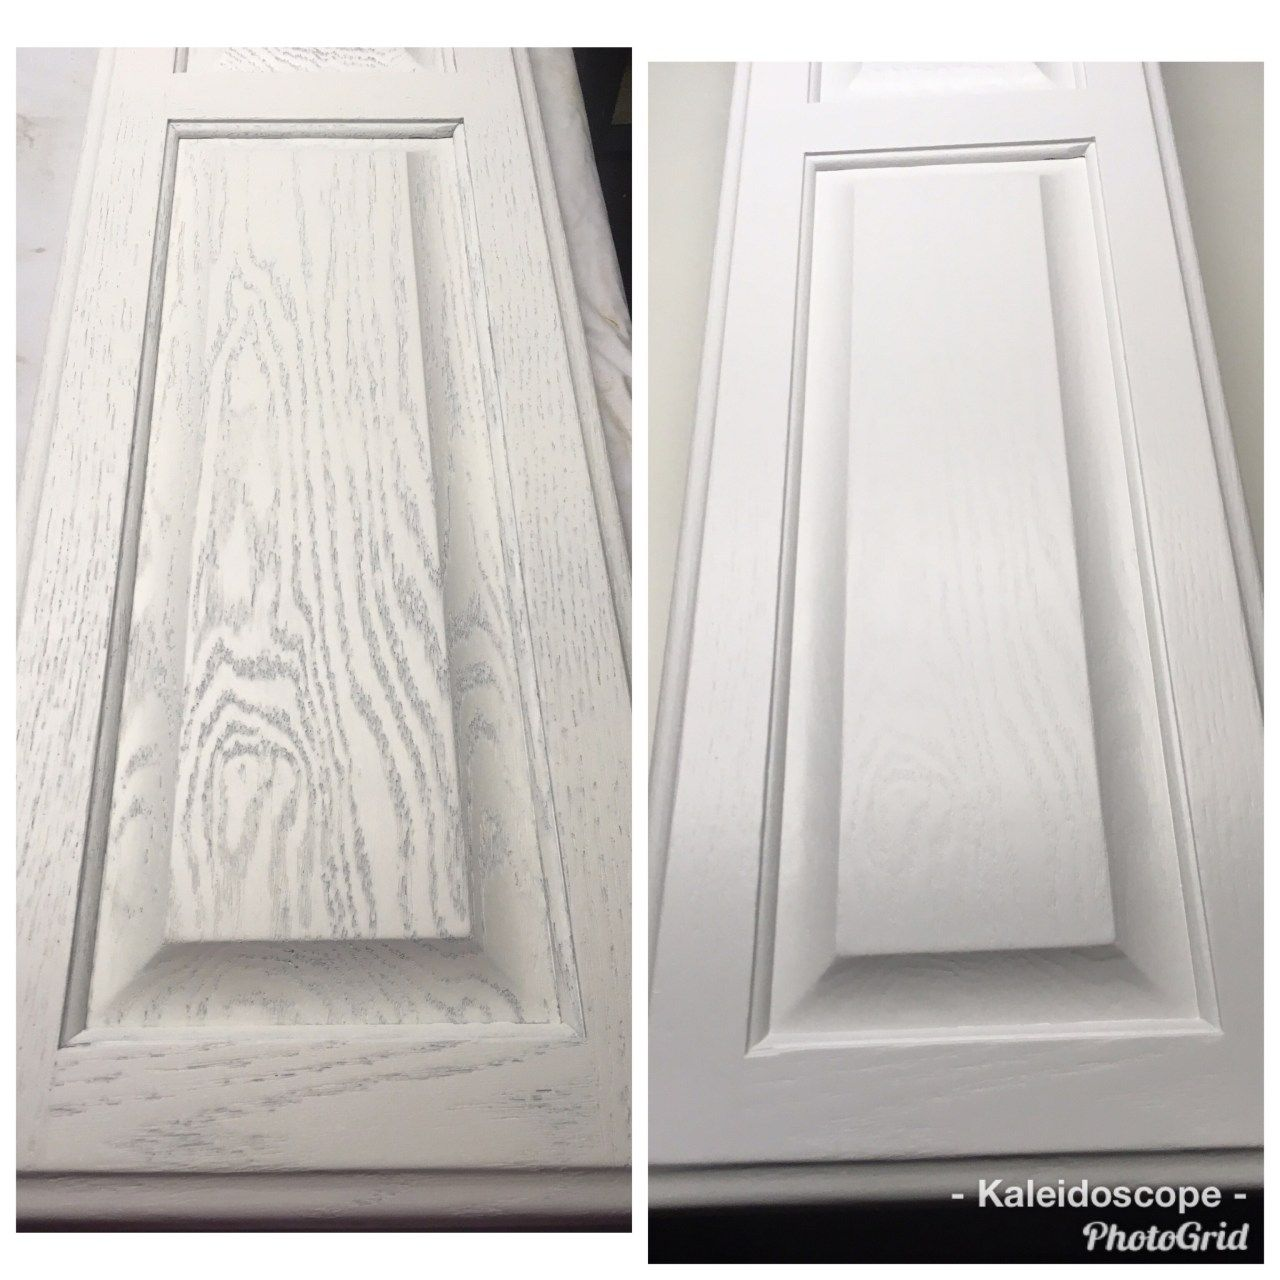 Aqua Coat White Grain Filler Product How To Grain Filler For Wood Cabinets Painting Cabinets Furniture Makeover Painting Kitchen Cabinets